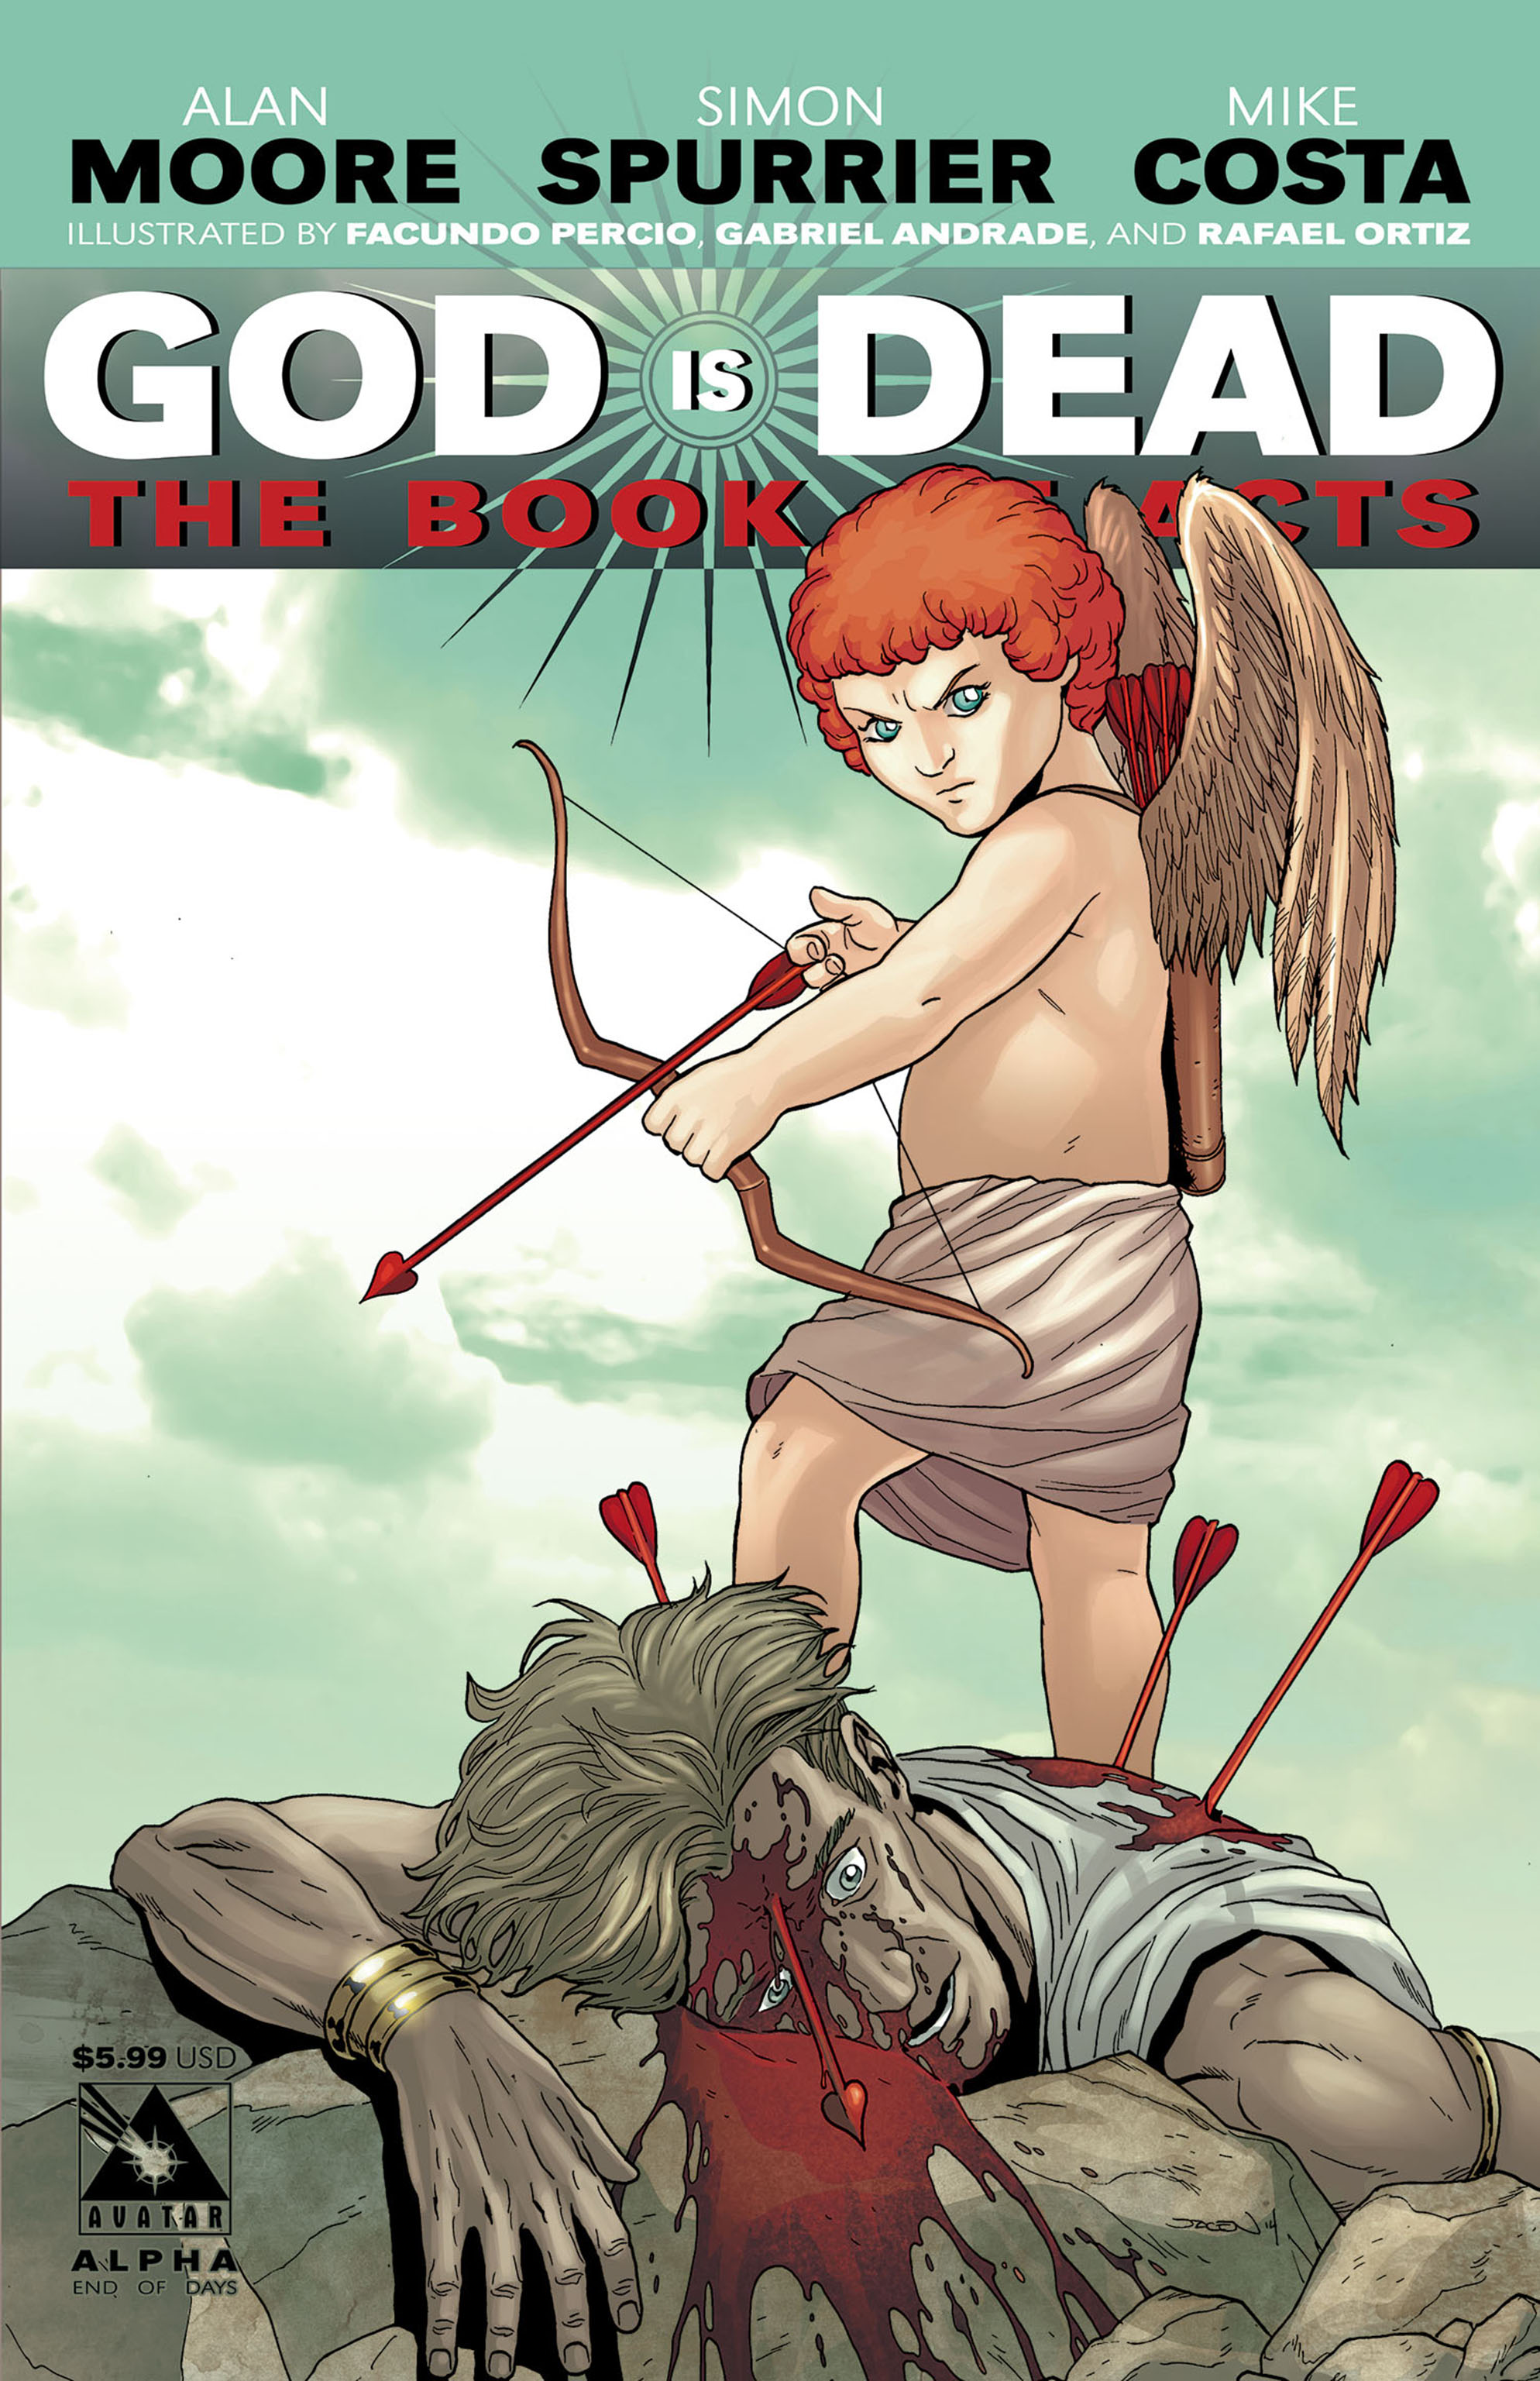 Read online God is Dead: Book of Acts comic -  Issue # Alpha - 3